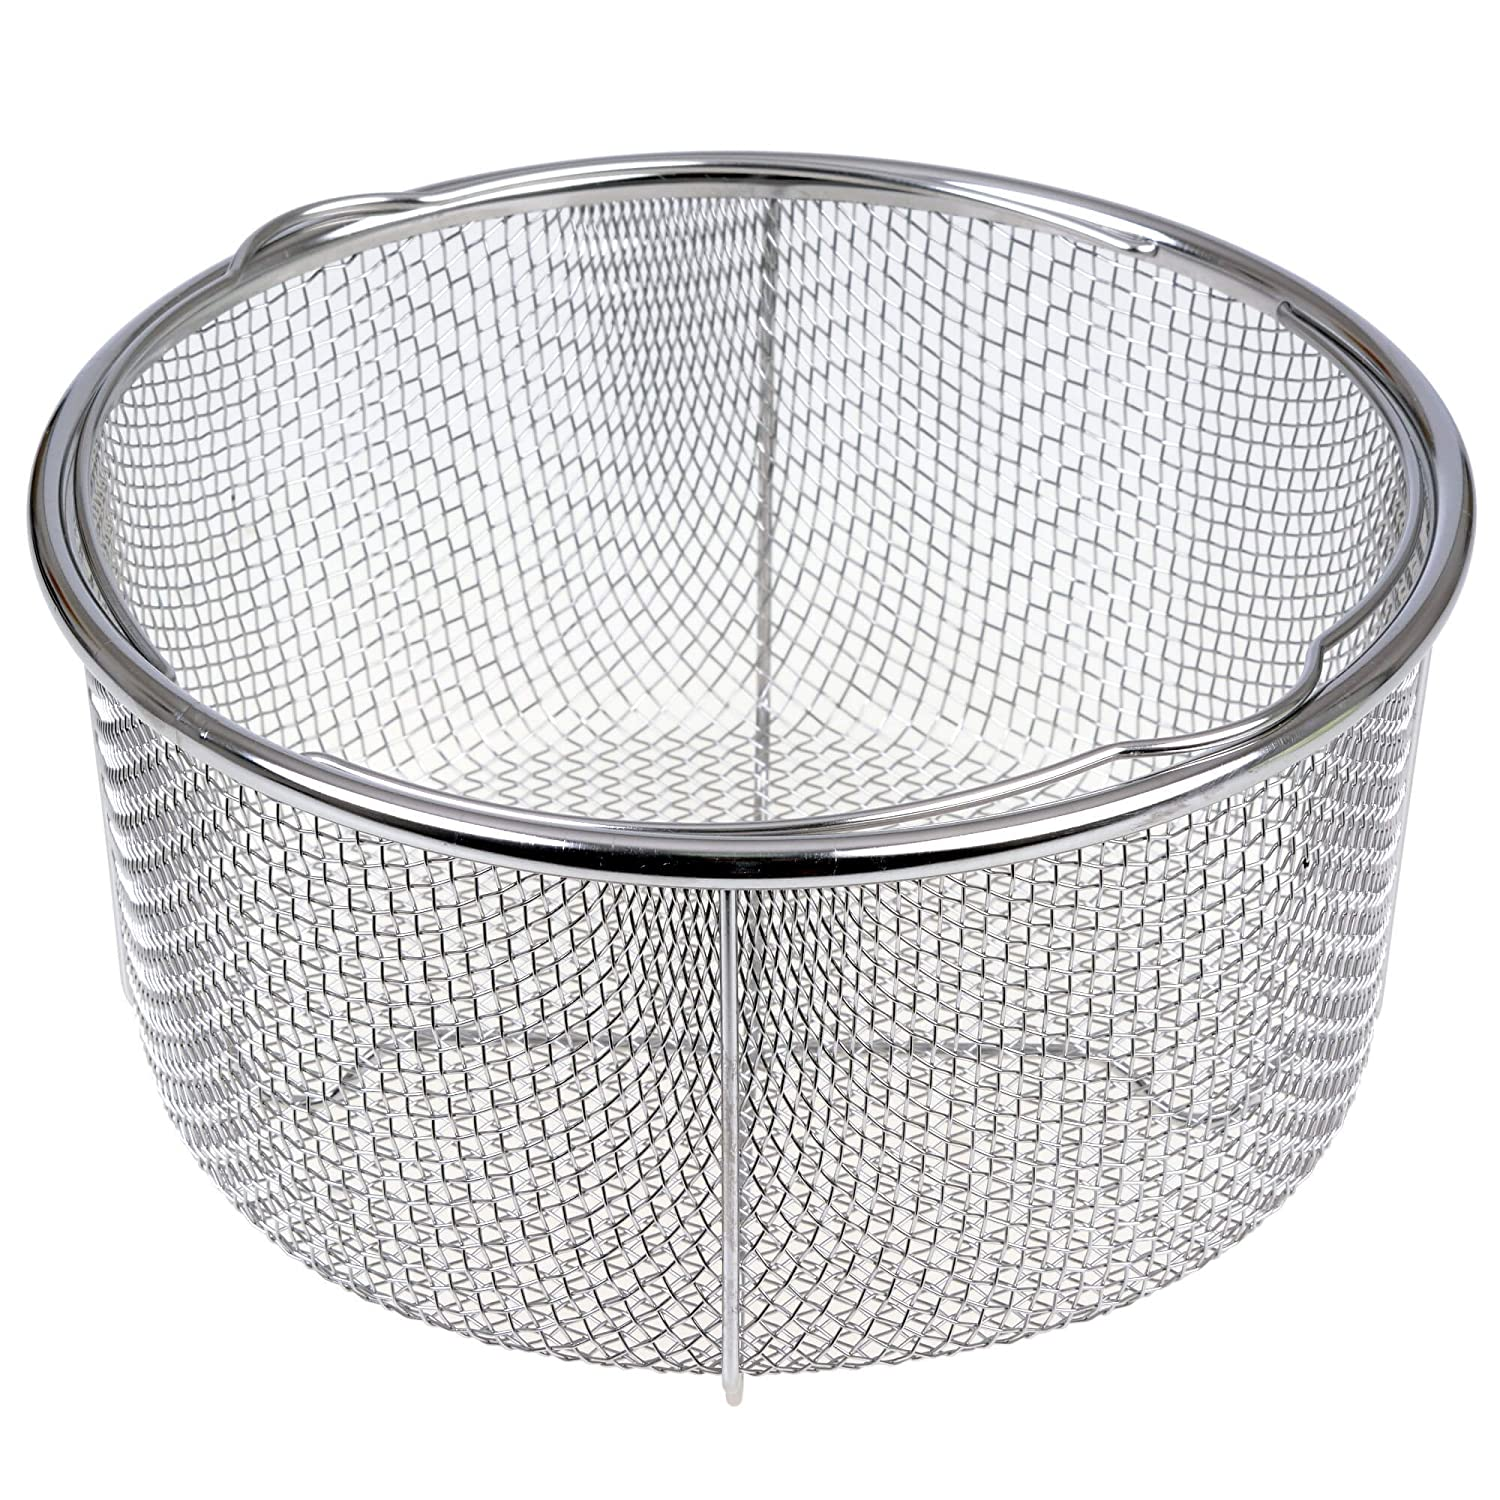 GRÄWE Steamer Insert for Cooking Pots - Steamer Basket made of Stainless Steel, Diameter 21 cm